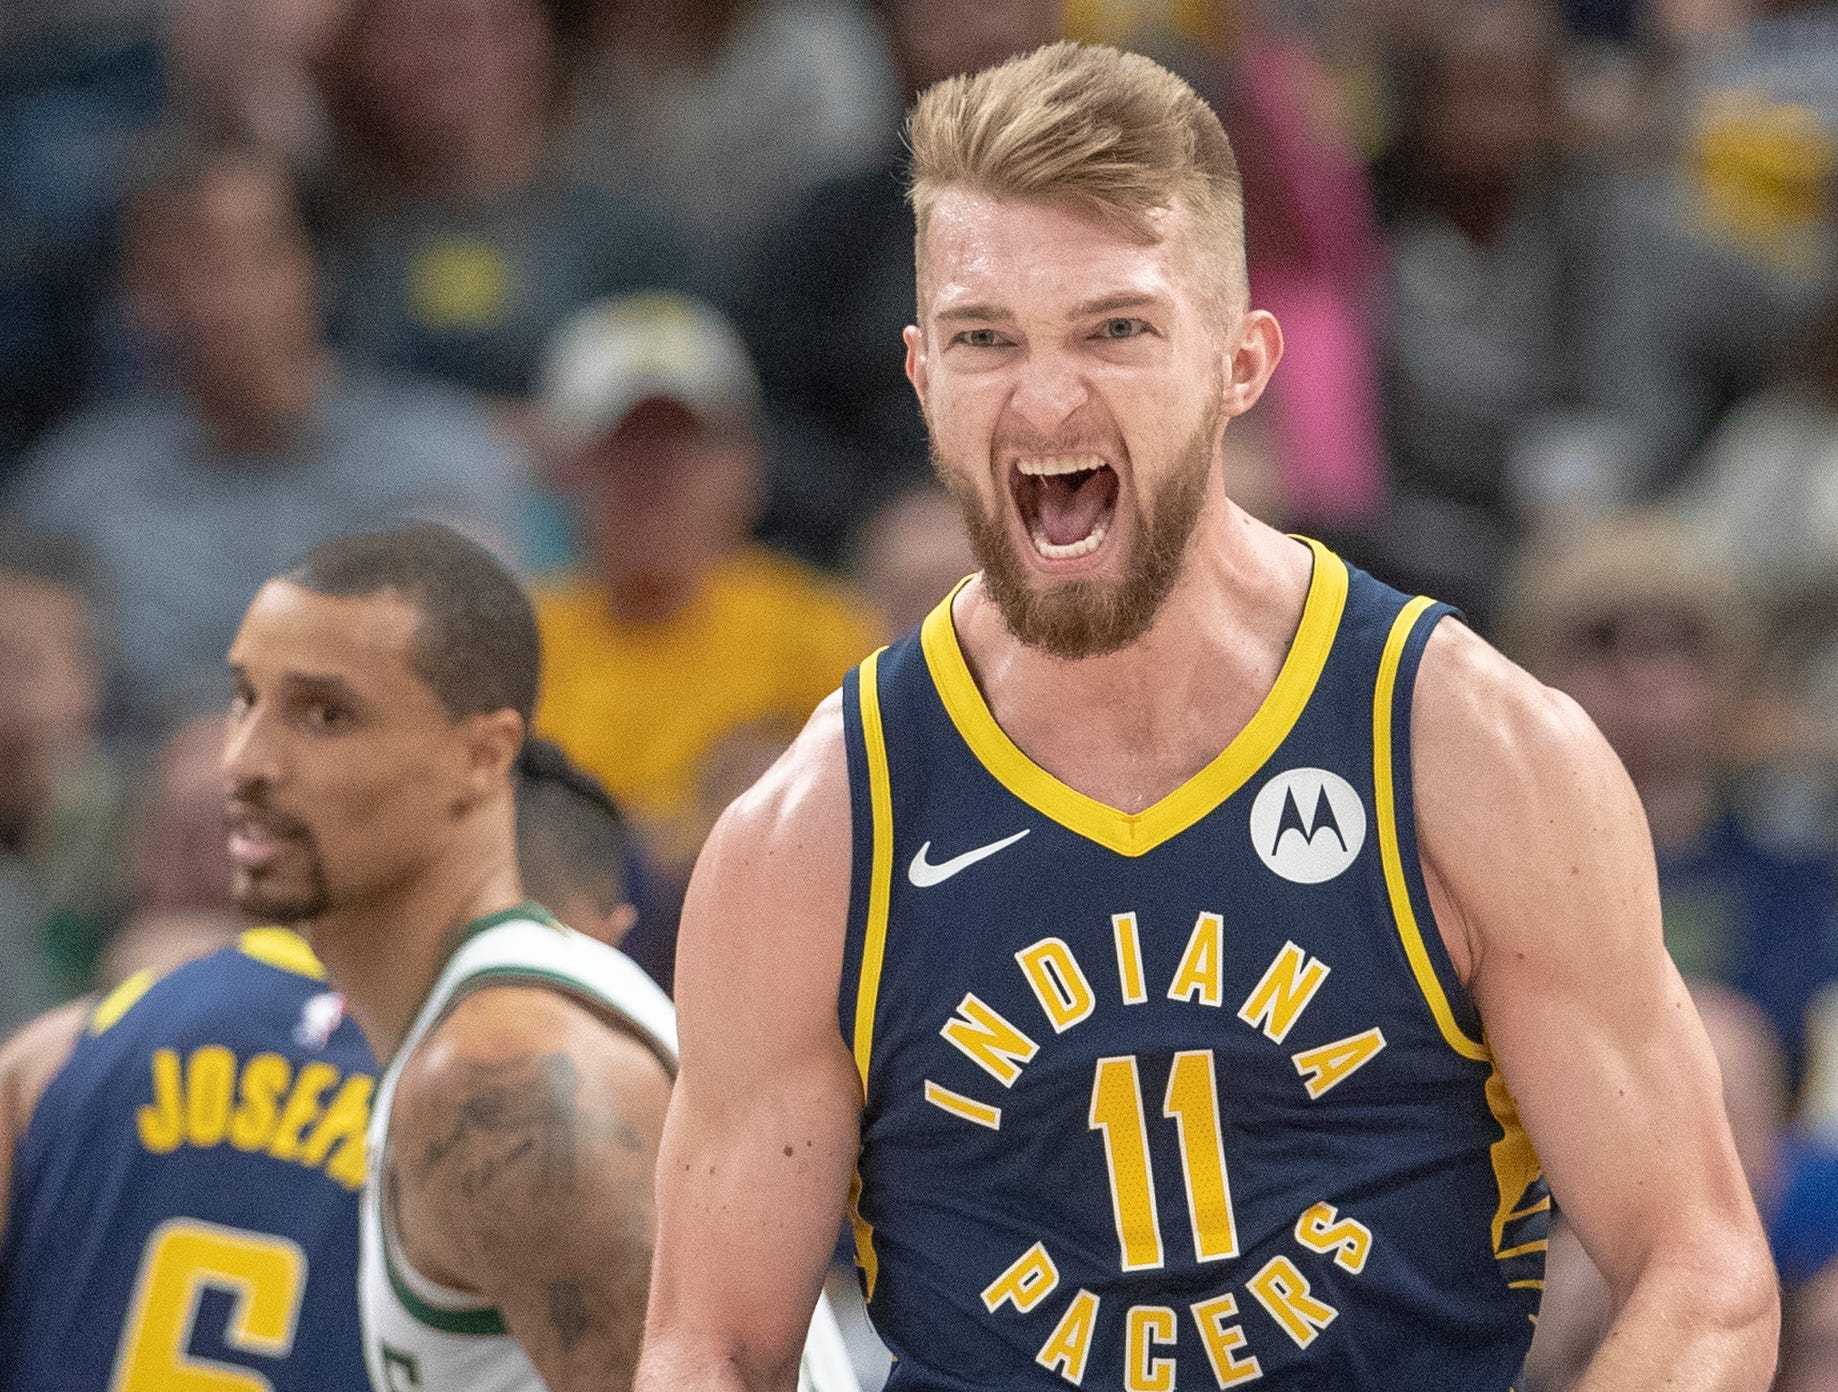 Domantas Sabonis of the Indiana Pacers yells after scoring a tough second half basket for the Pacers against Milwaukee, Bankers Life Fieldhouse, Wednesday, Feb. 13, 2019. Milwaukee won 106-97.